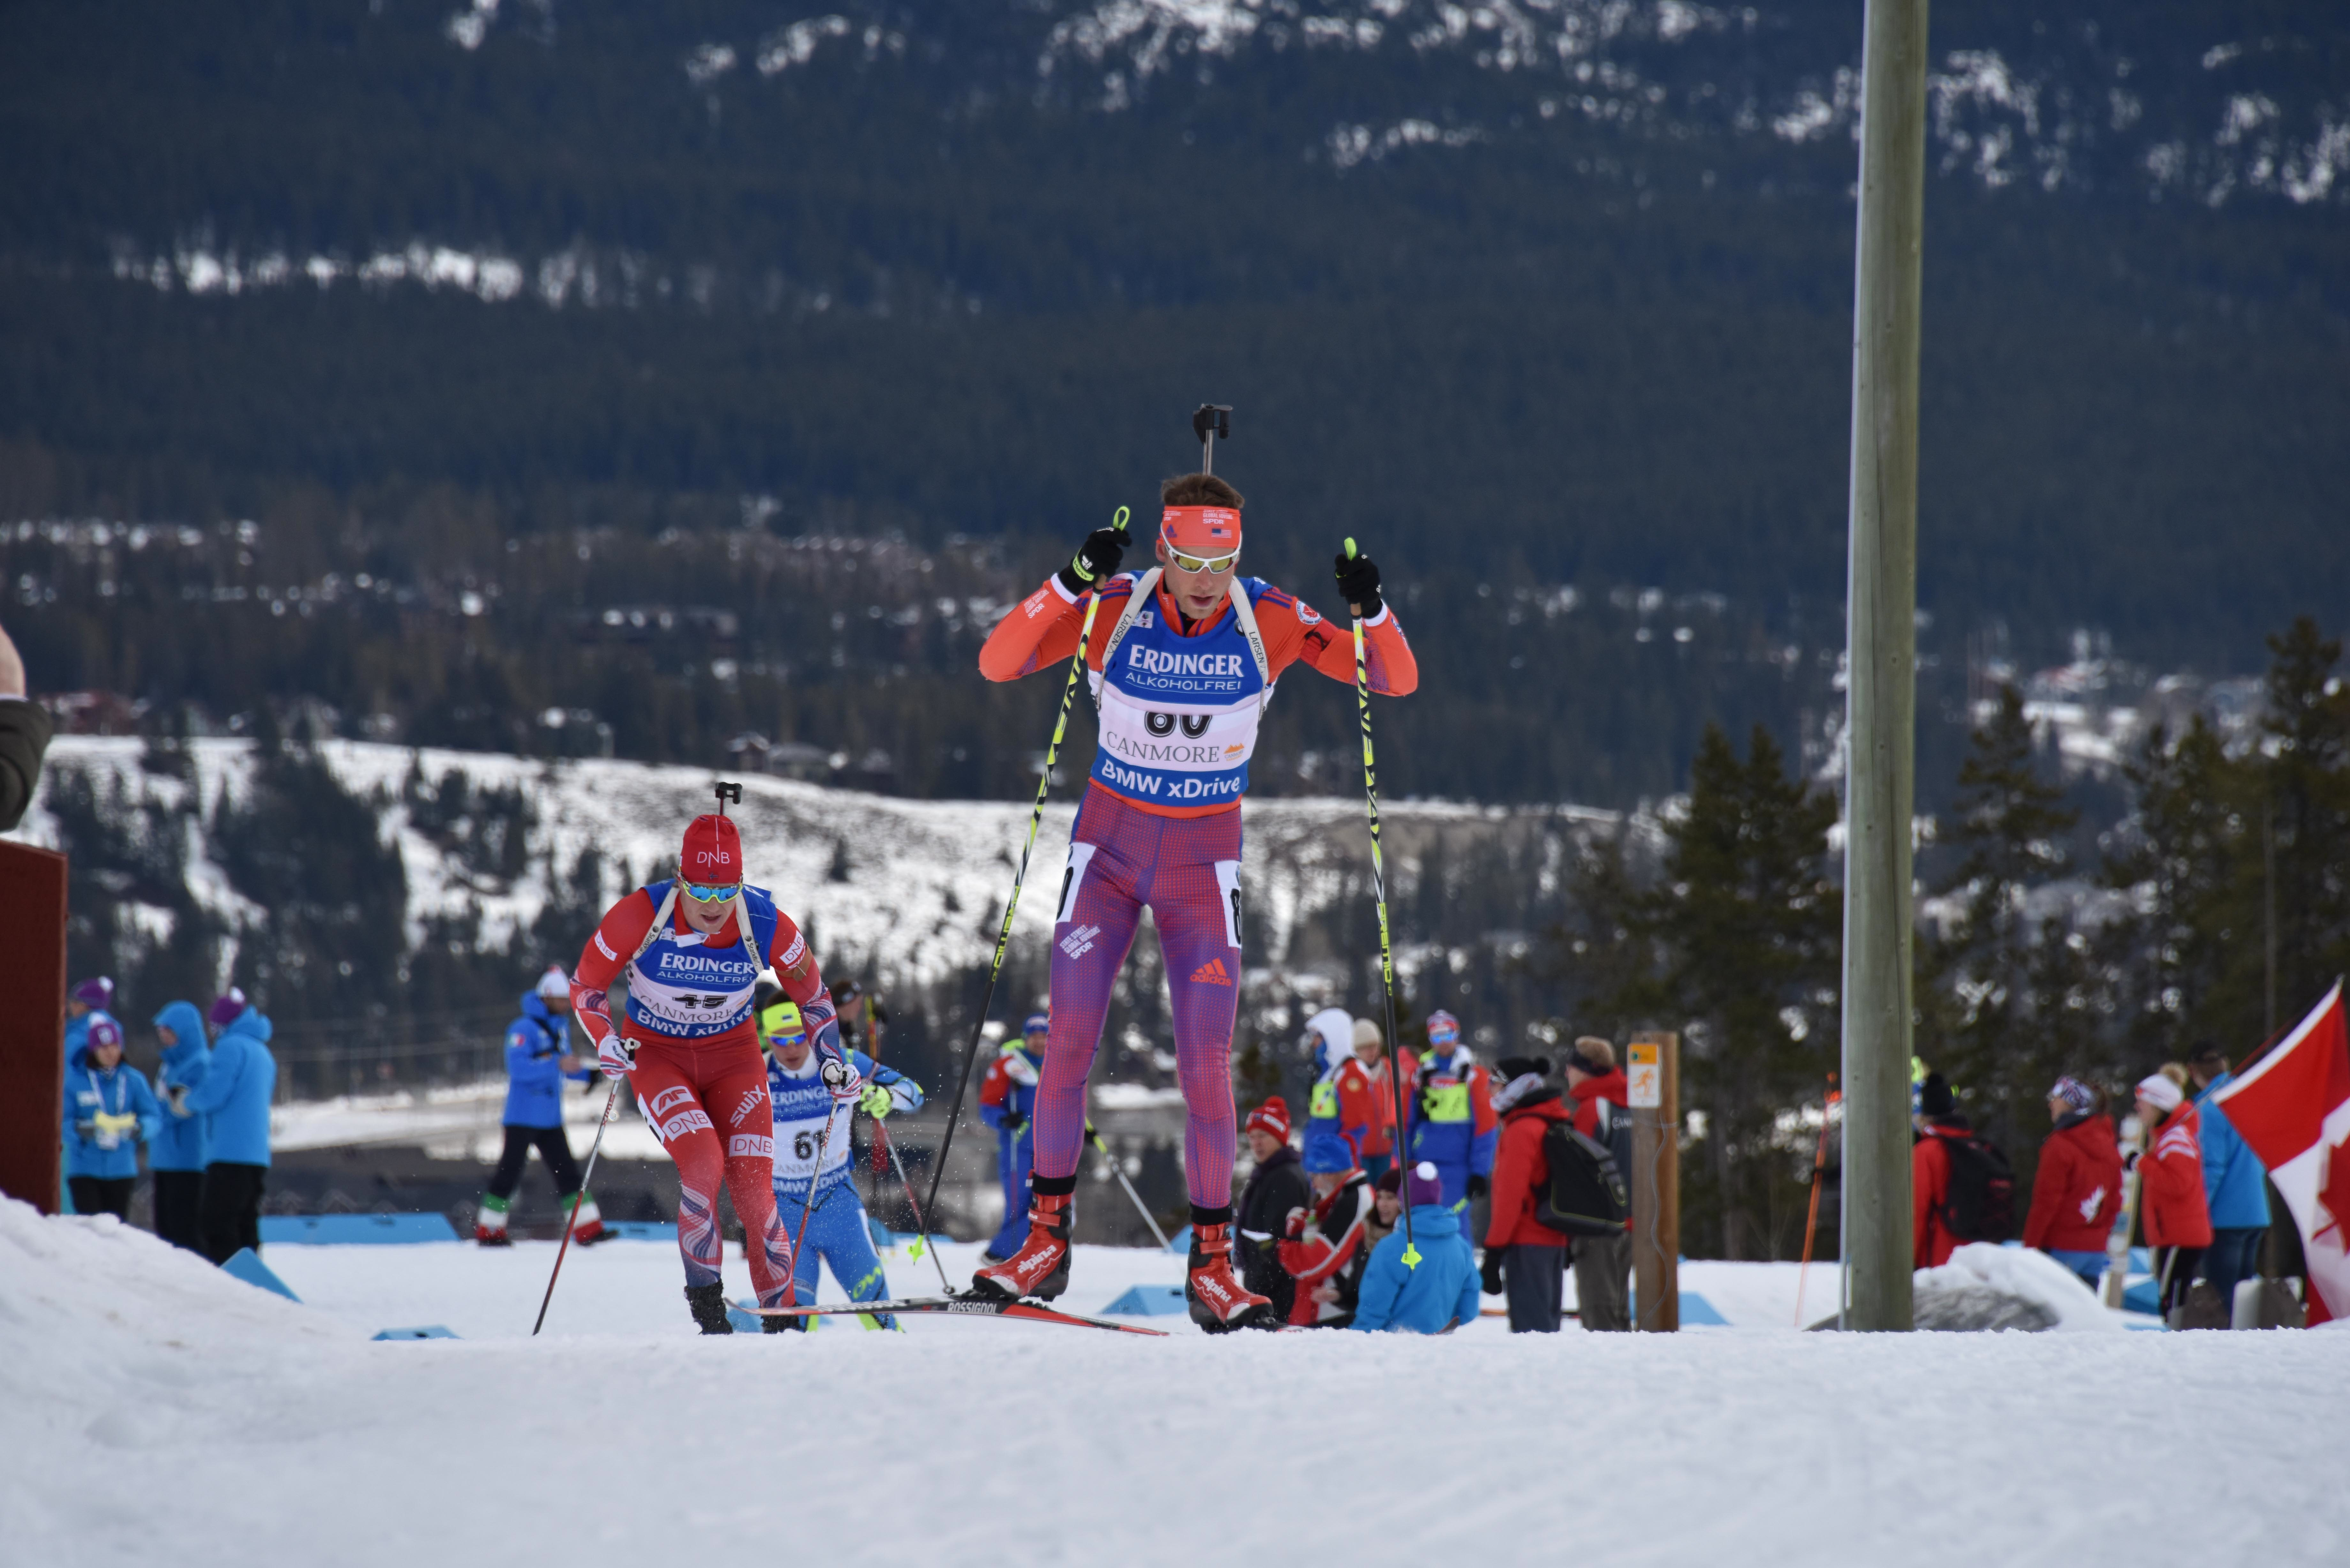 Max Durtschi making his World Cup debut in Canmore, Alberta, last season. (Courtesy photo)